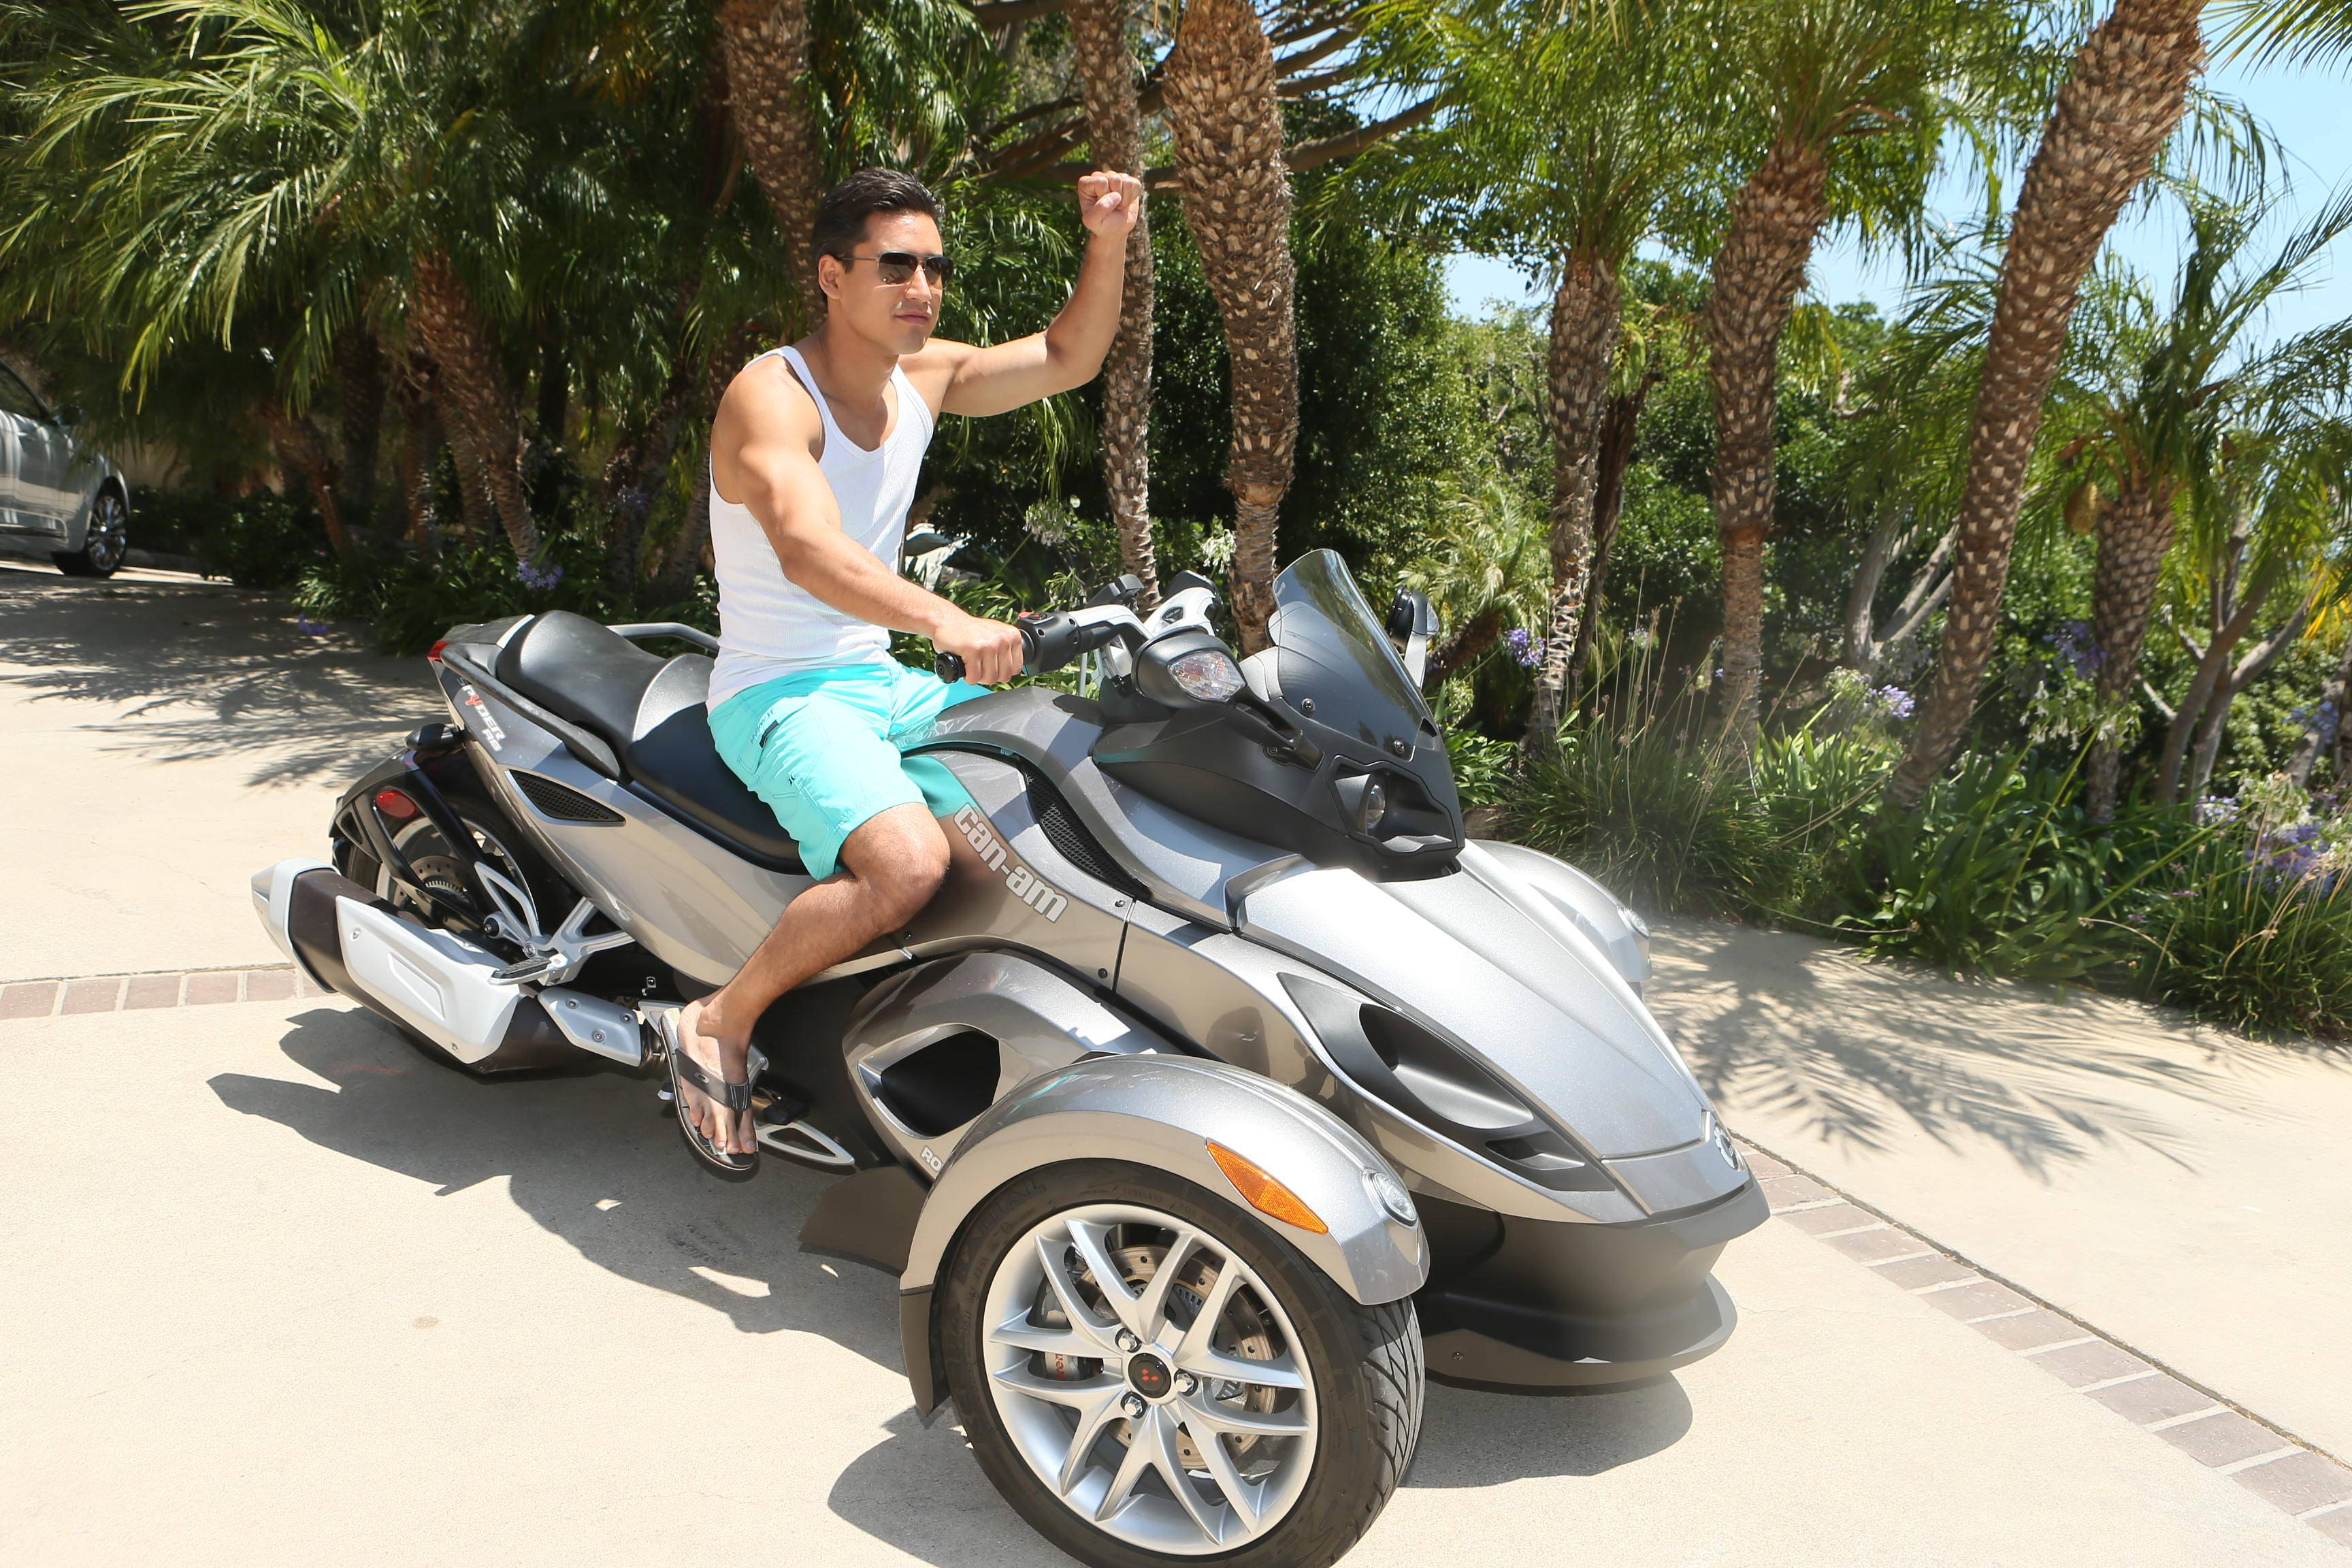 Mario Lopz goes for a spin in Malibu on the new Can-Am Spyder.